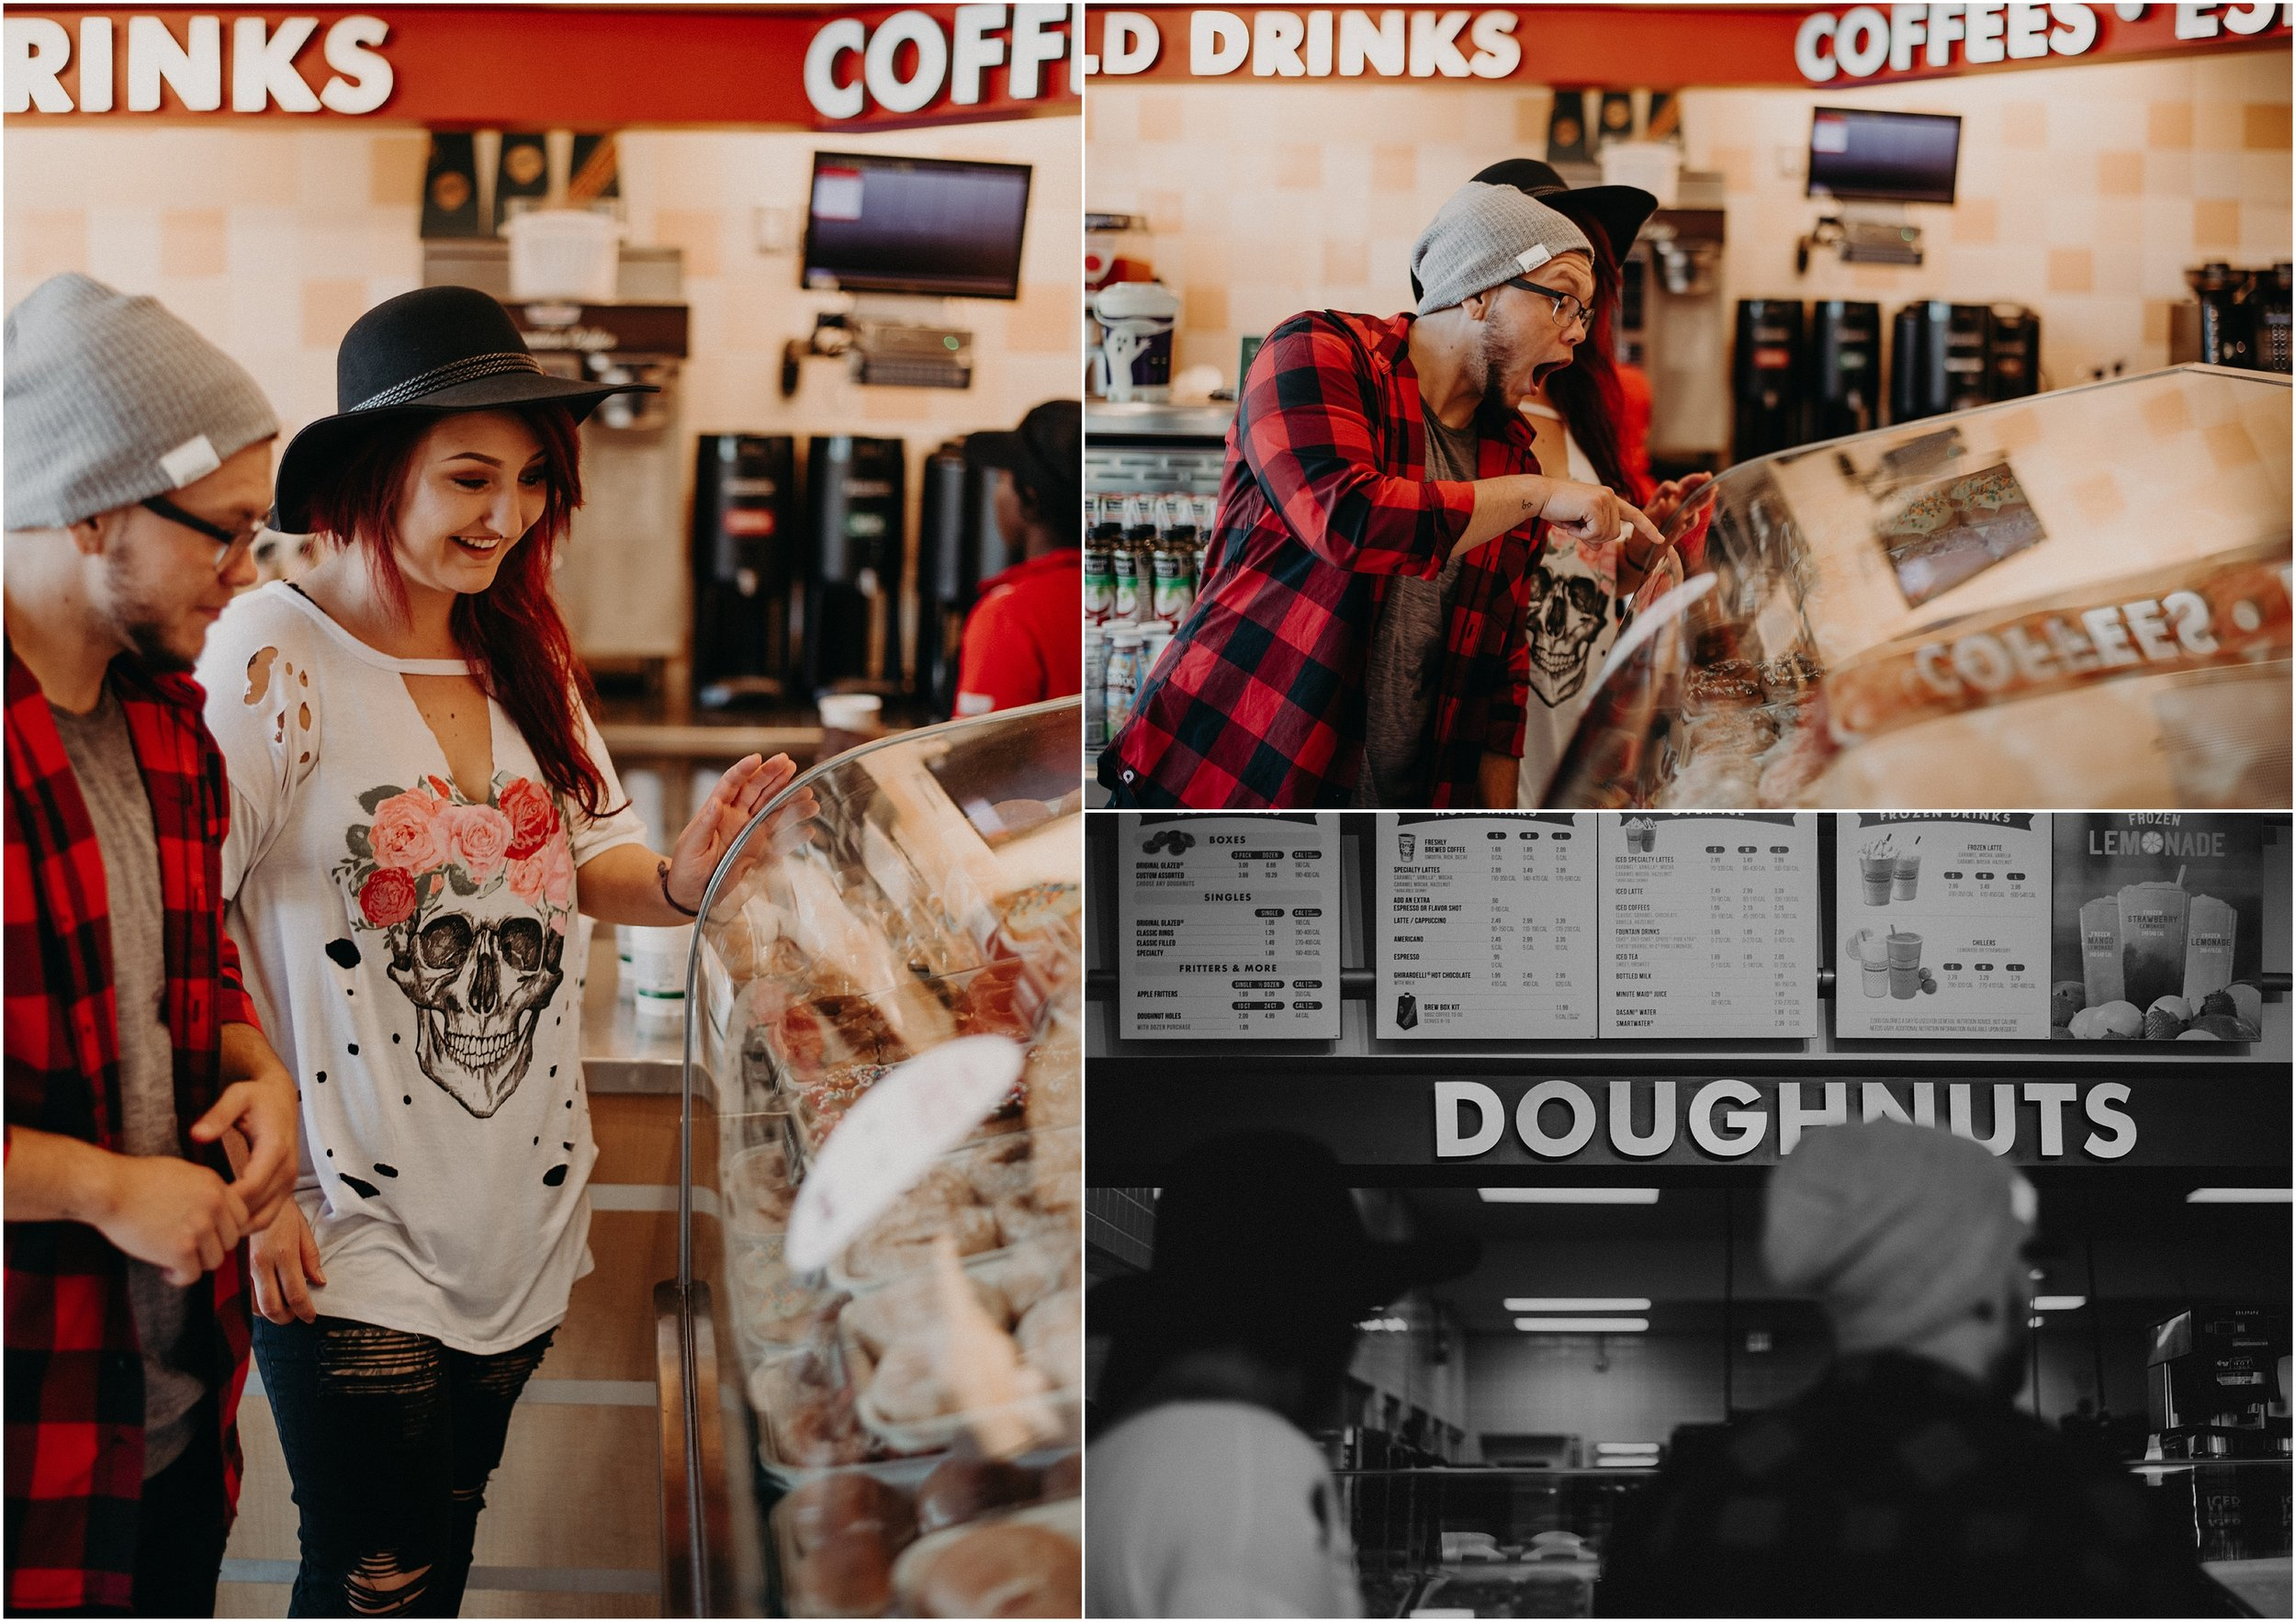 Excited for doughnuts at Krispy Kreme during love story couples session